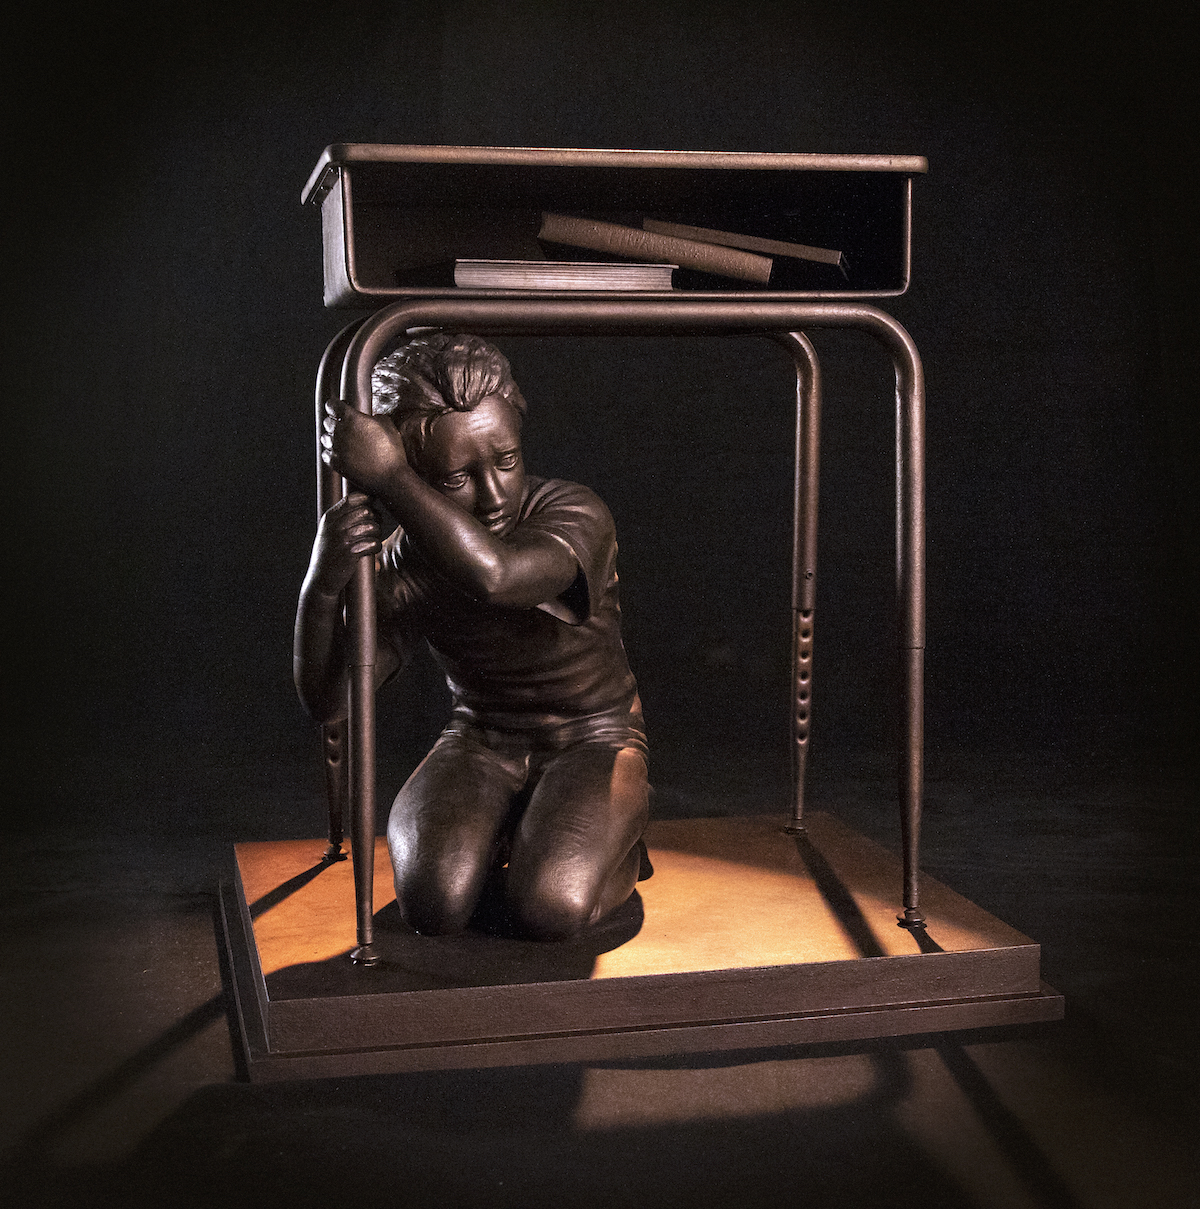 Last Lockdown - Sculpture Against School Shootings